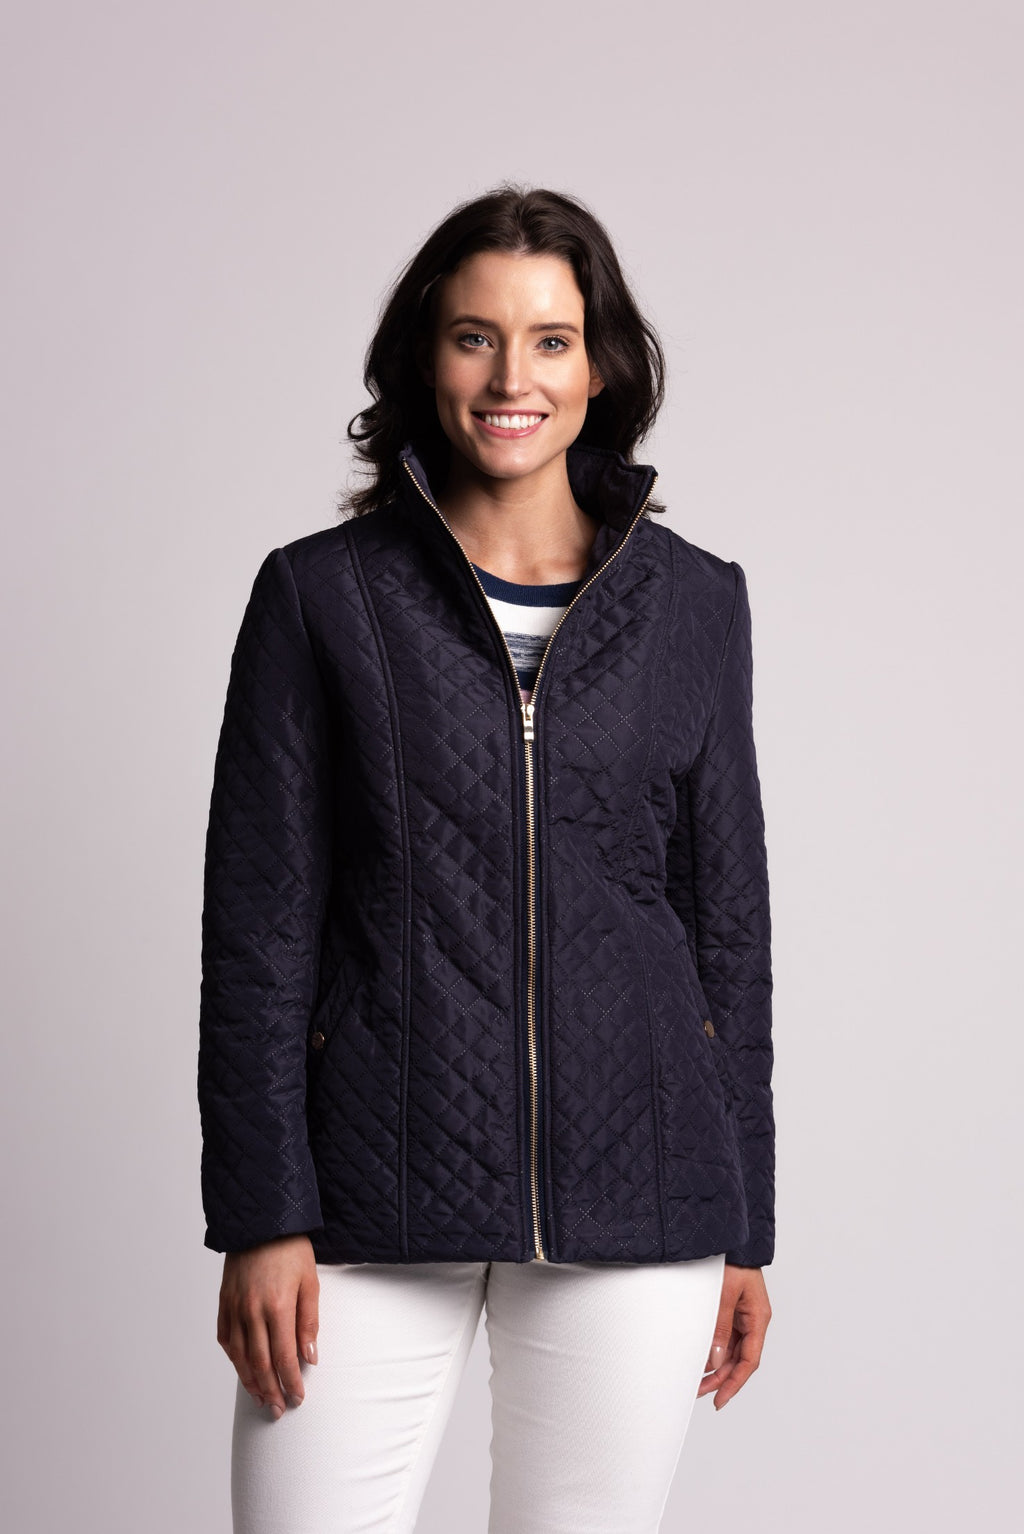 DIAMOND HEAT QUILT JACKET